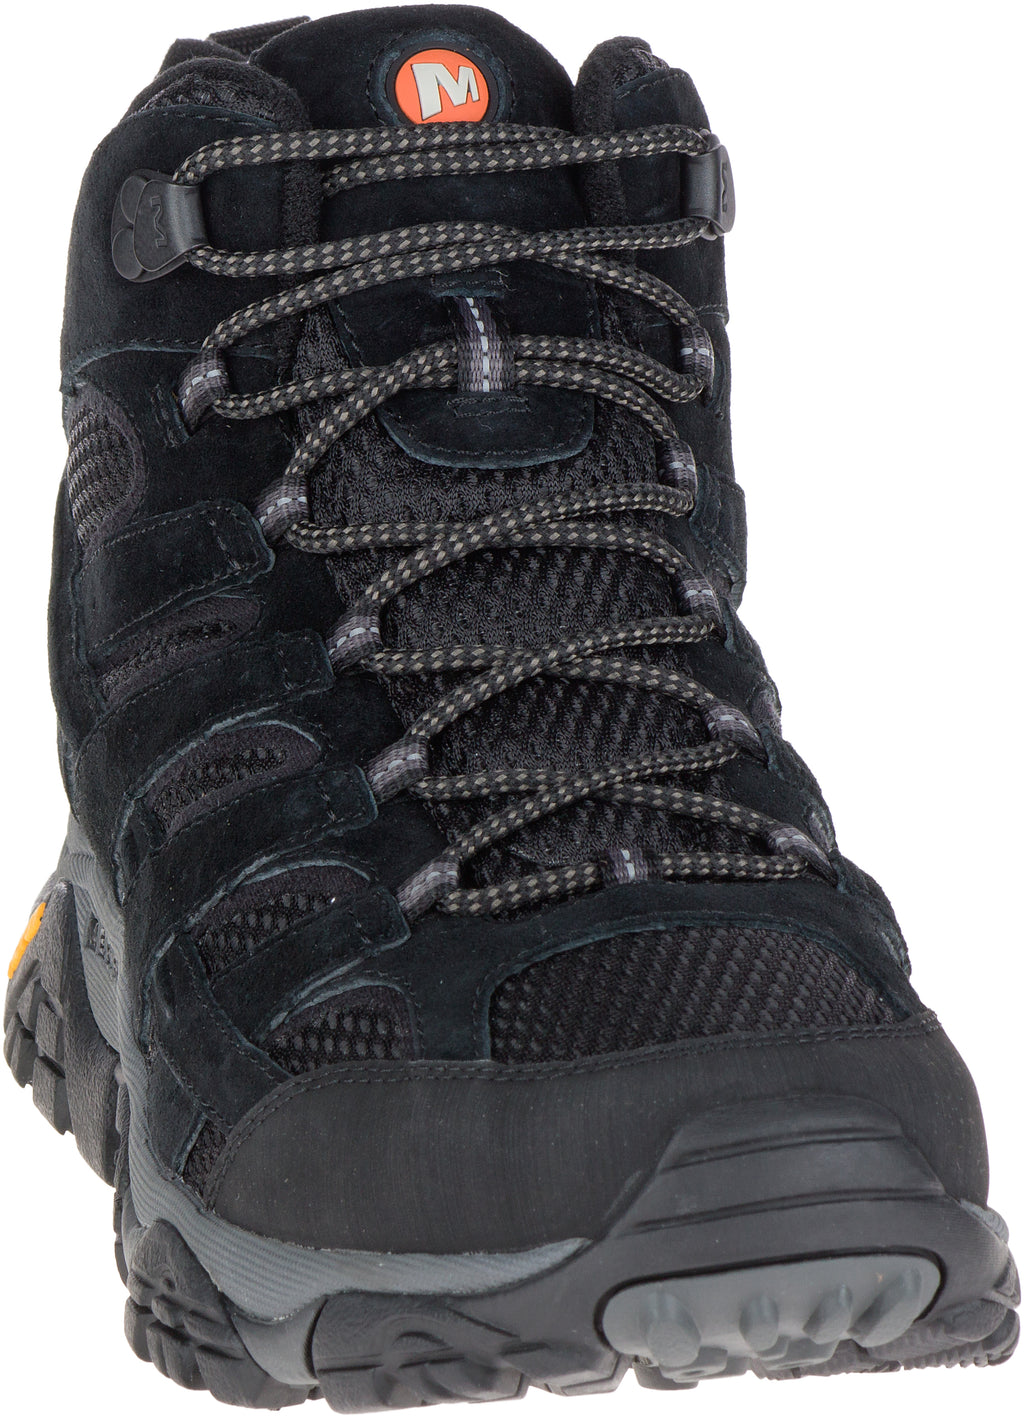 Merrell Men's Moab 2 Mid Ventilator Black Night Wide